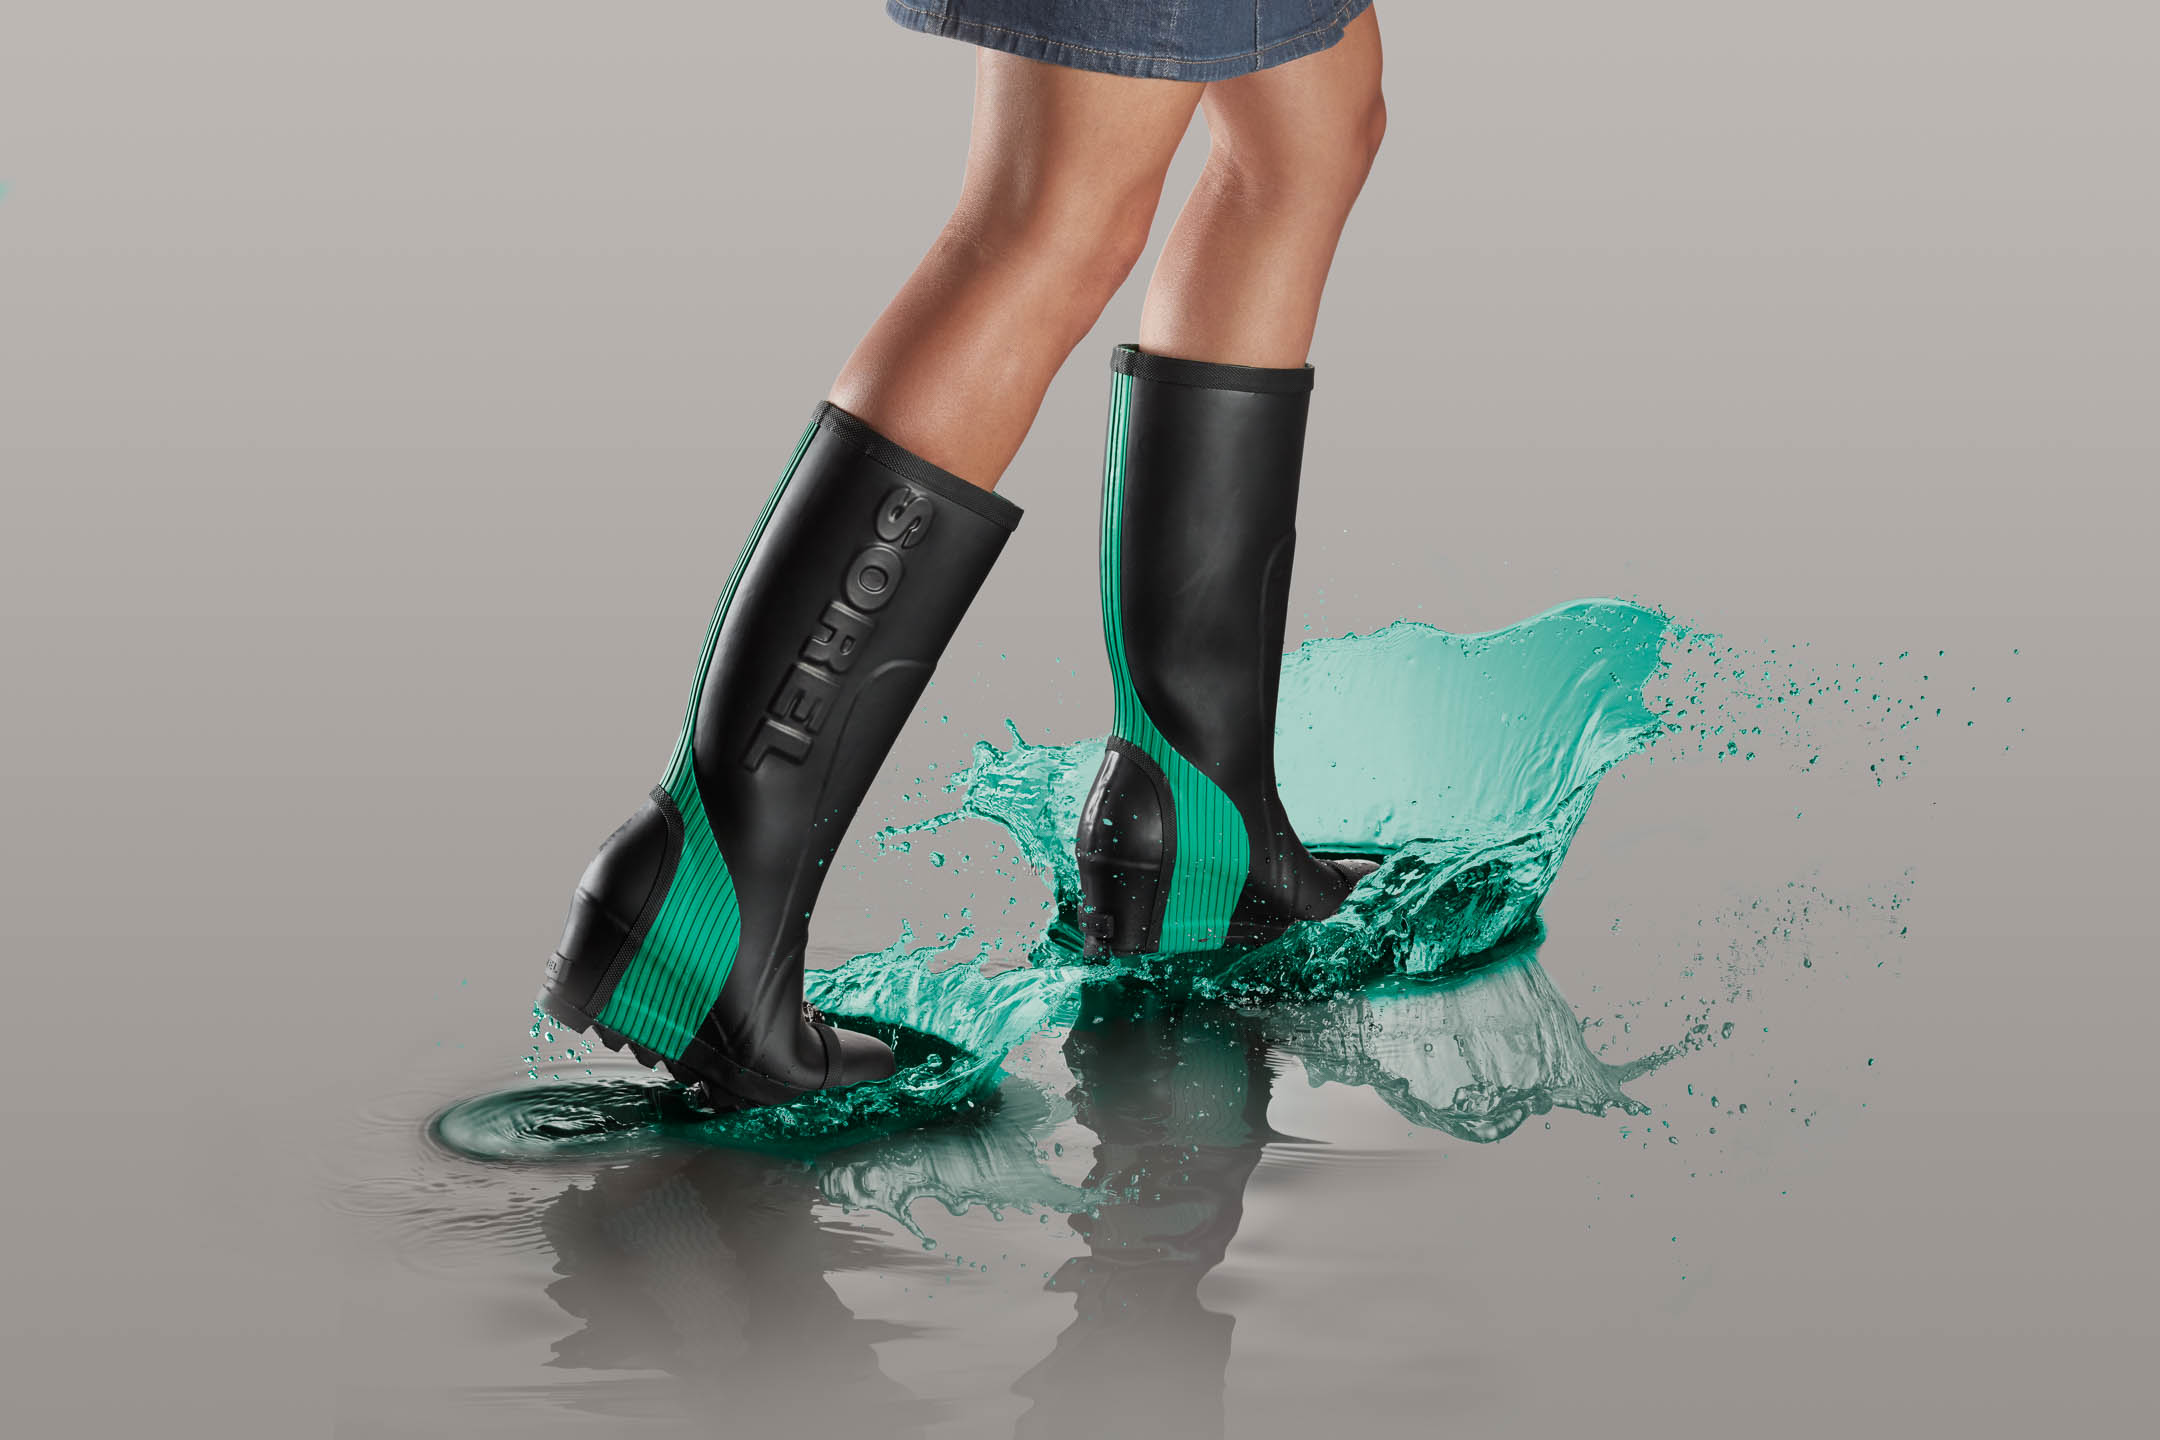 Sorel Wedge footwear splash by Steve Temple Photography